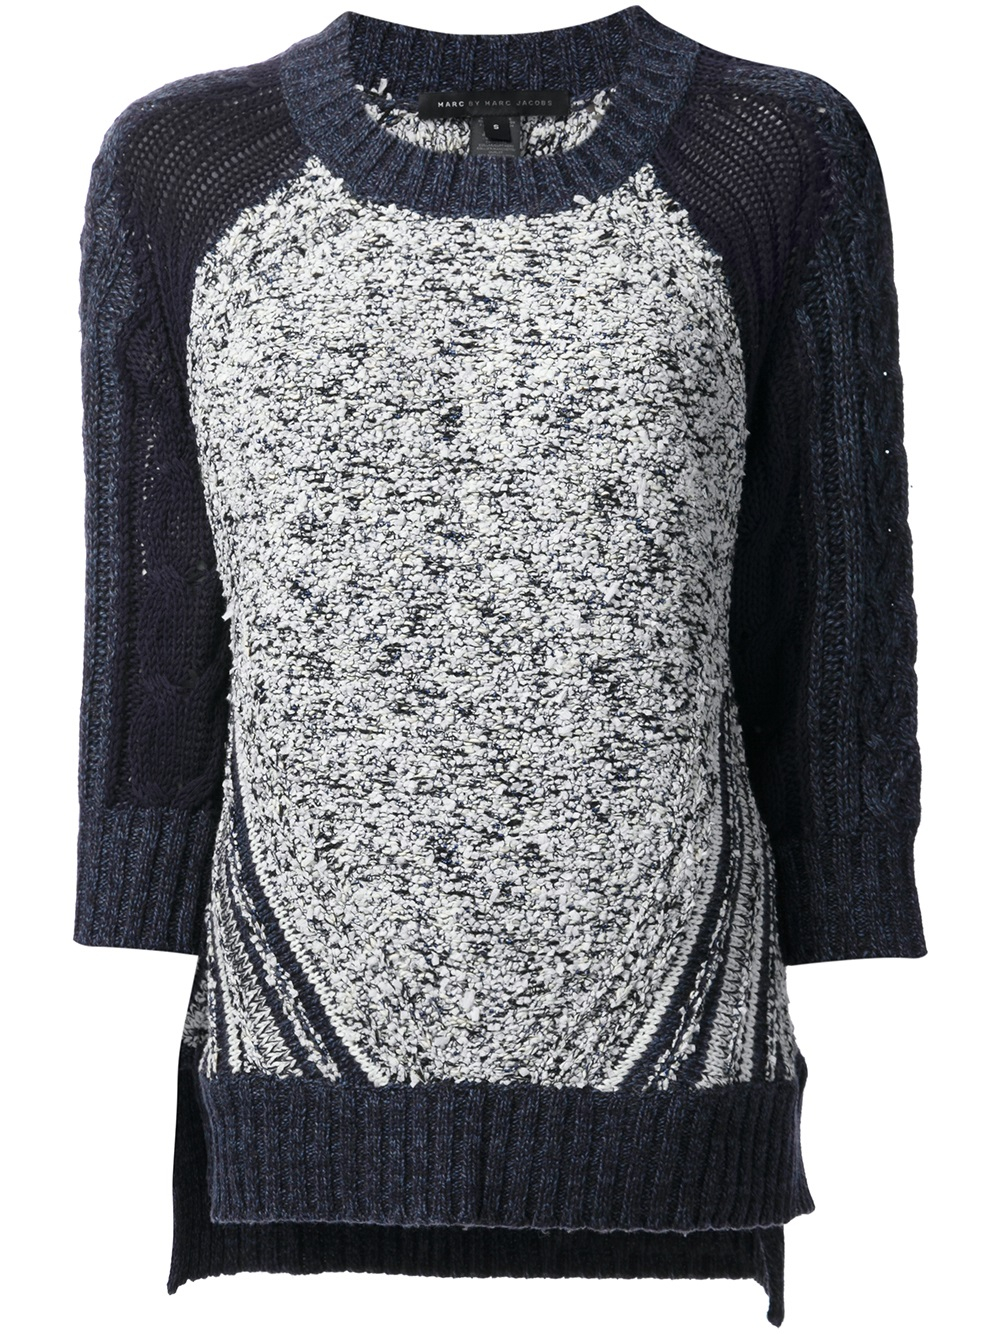 marc by marc jacobs textured knit sweater in blue lyst. Black Bedroom Furniture Sets. Home Design Ideas